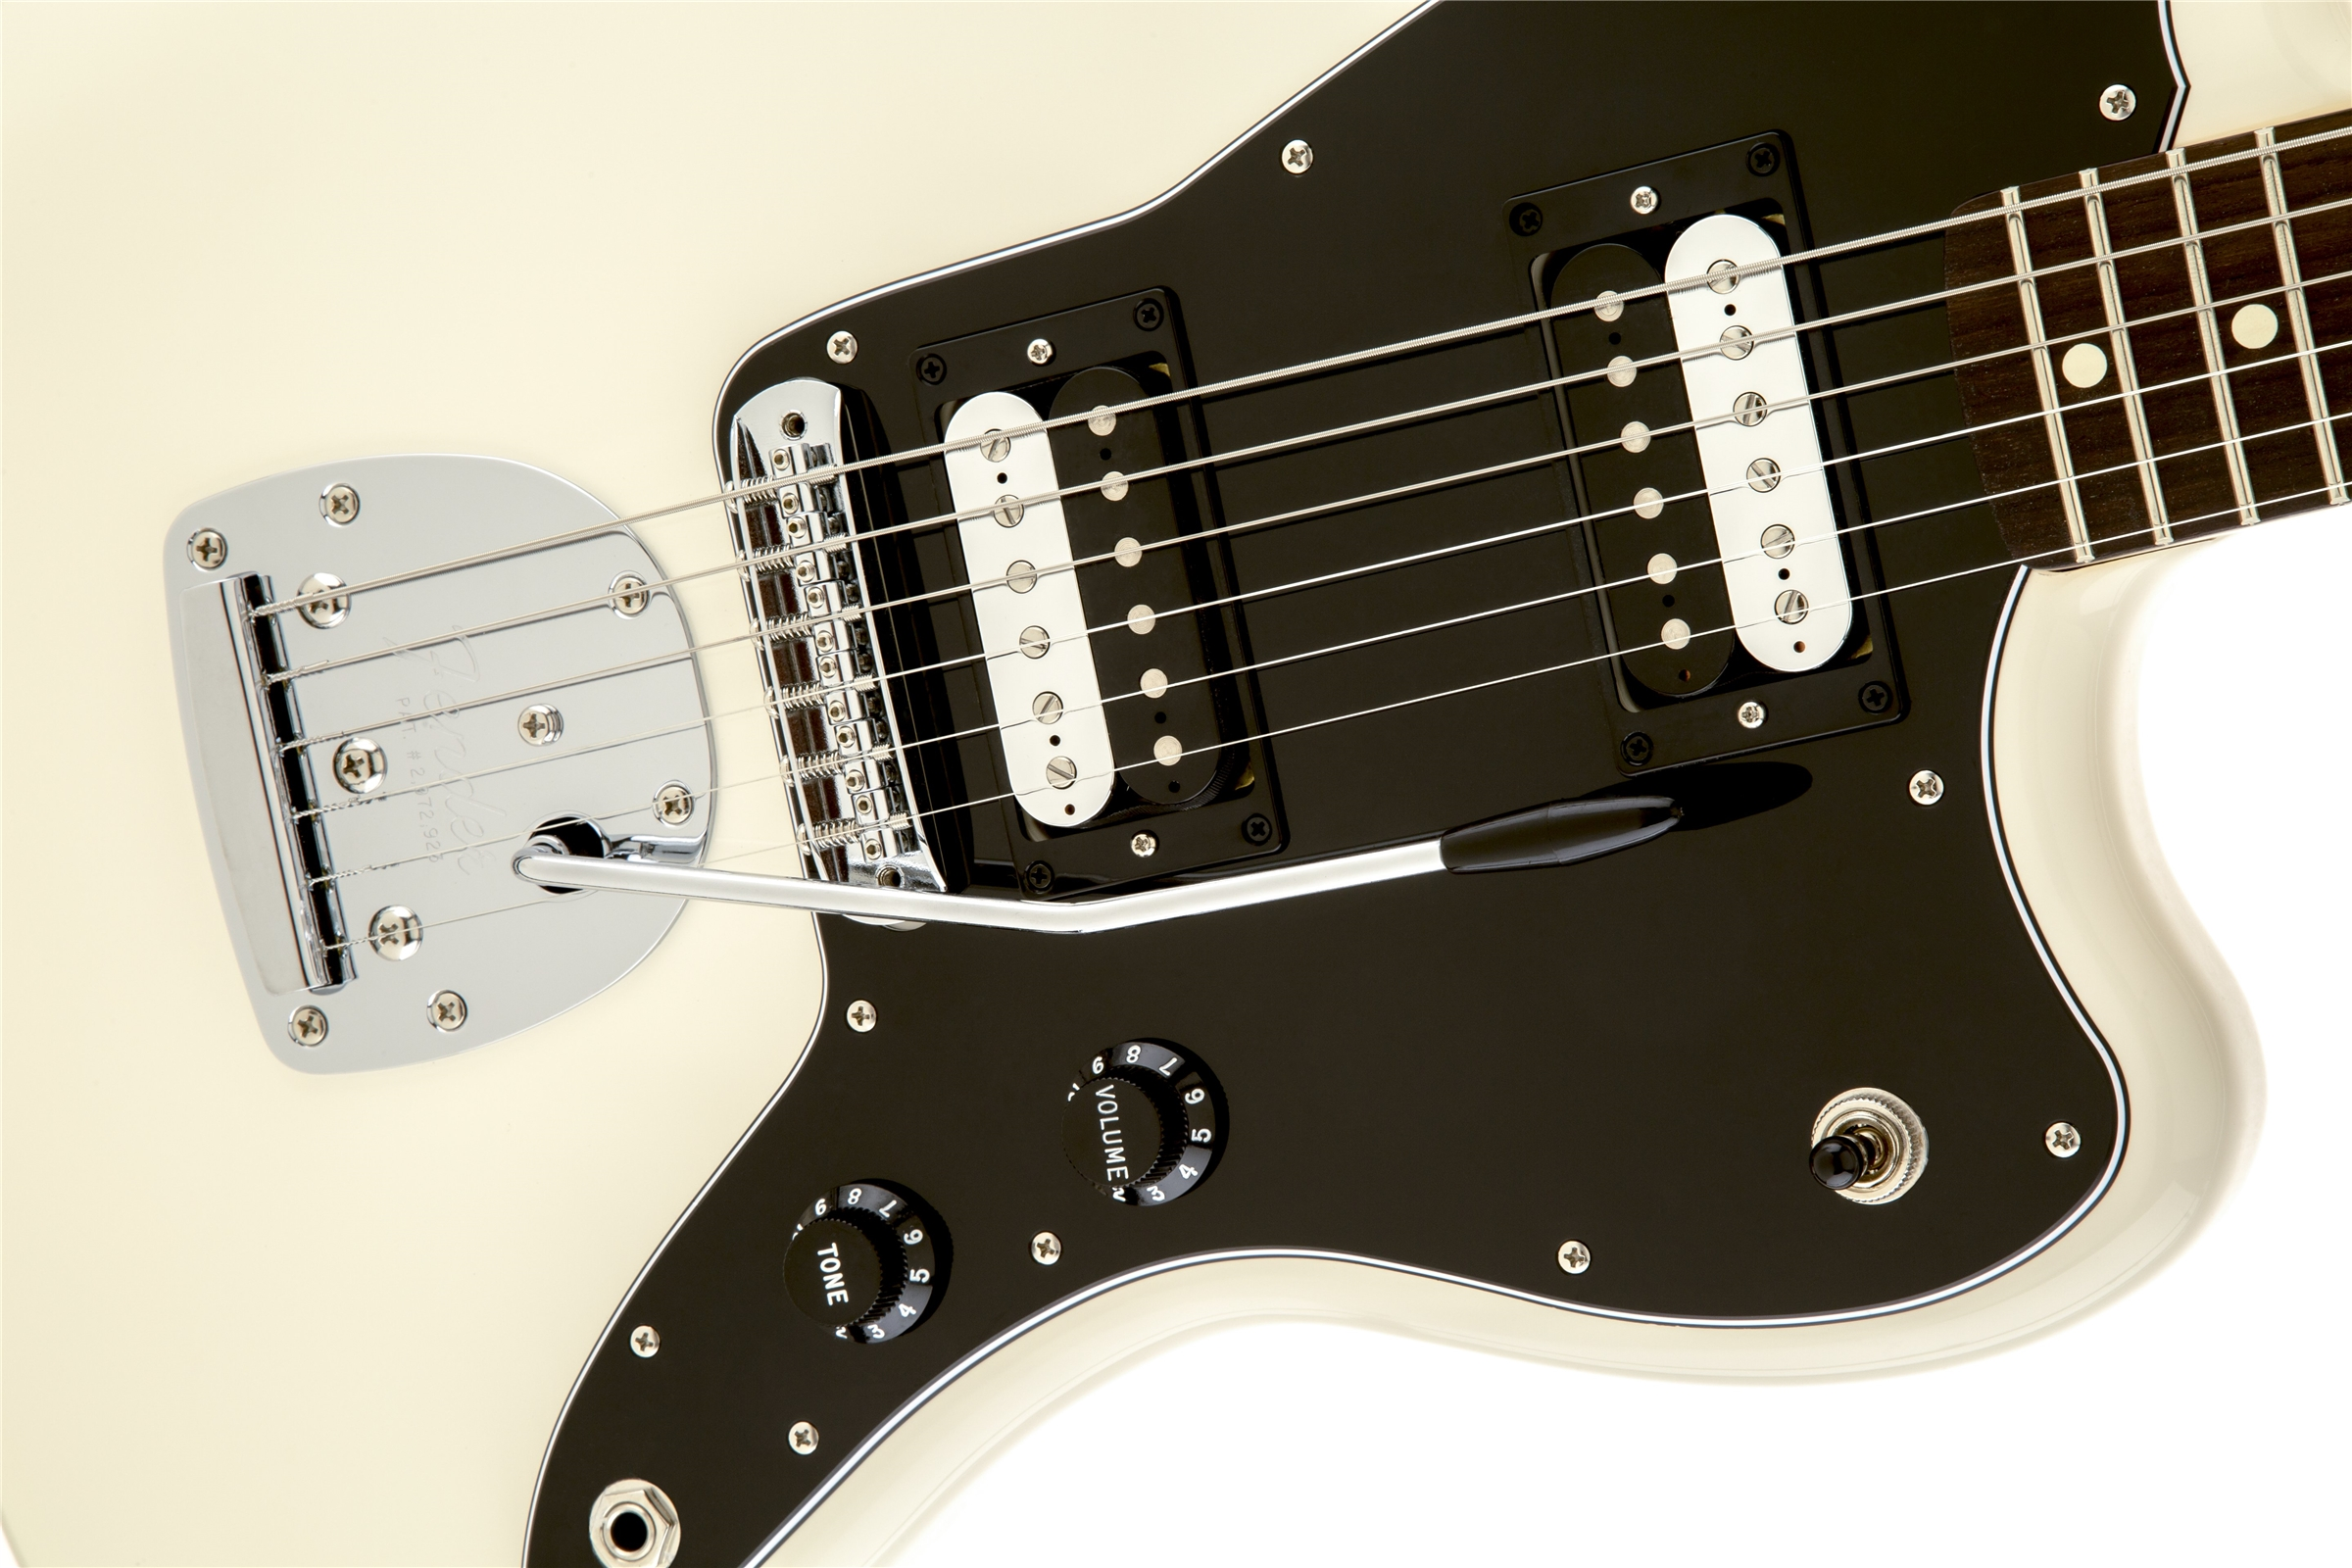 Fender Blacktop Jazzmaster Wiring Diagram Solutions Hh